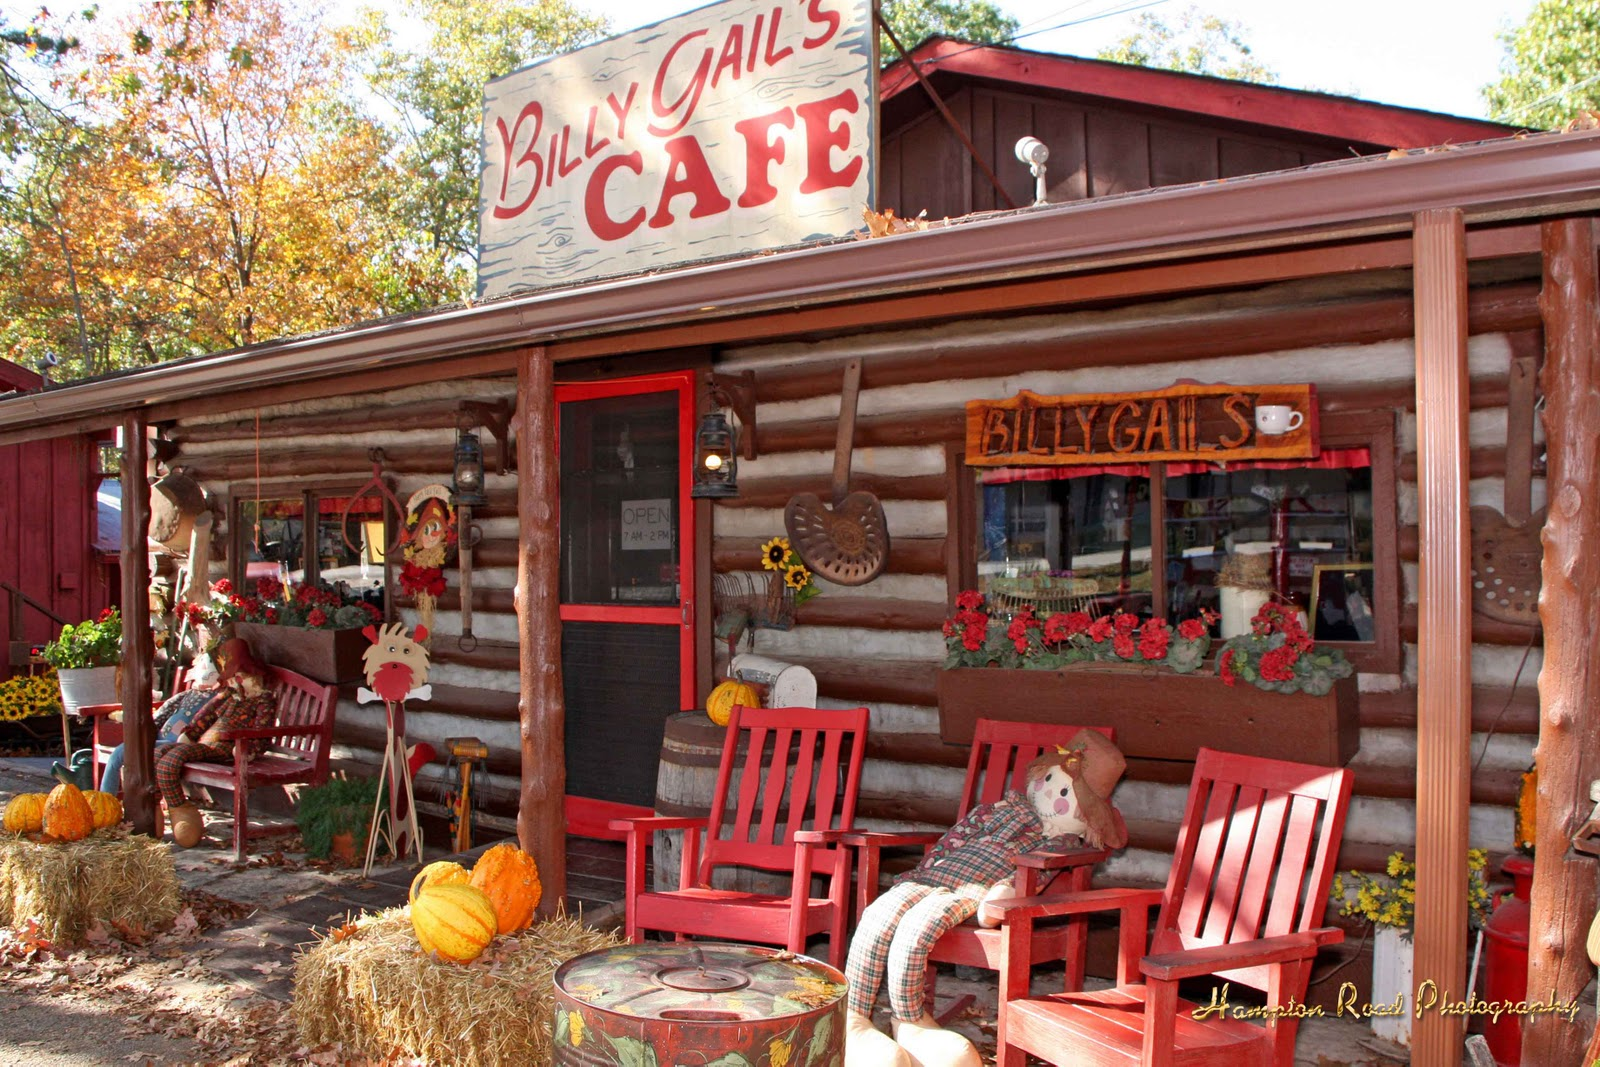 Breakfast, Lunch and Dinner in Branson, Missouri - We Have You Covered